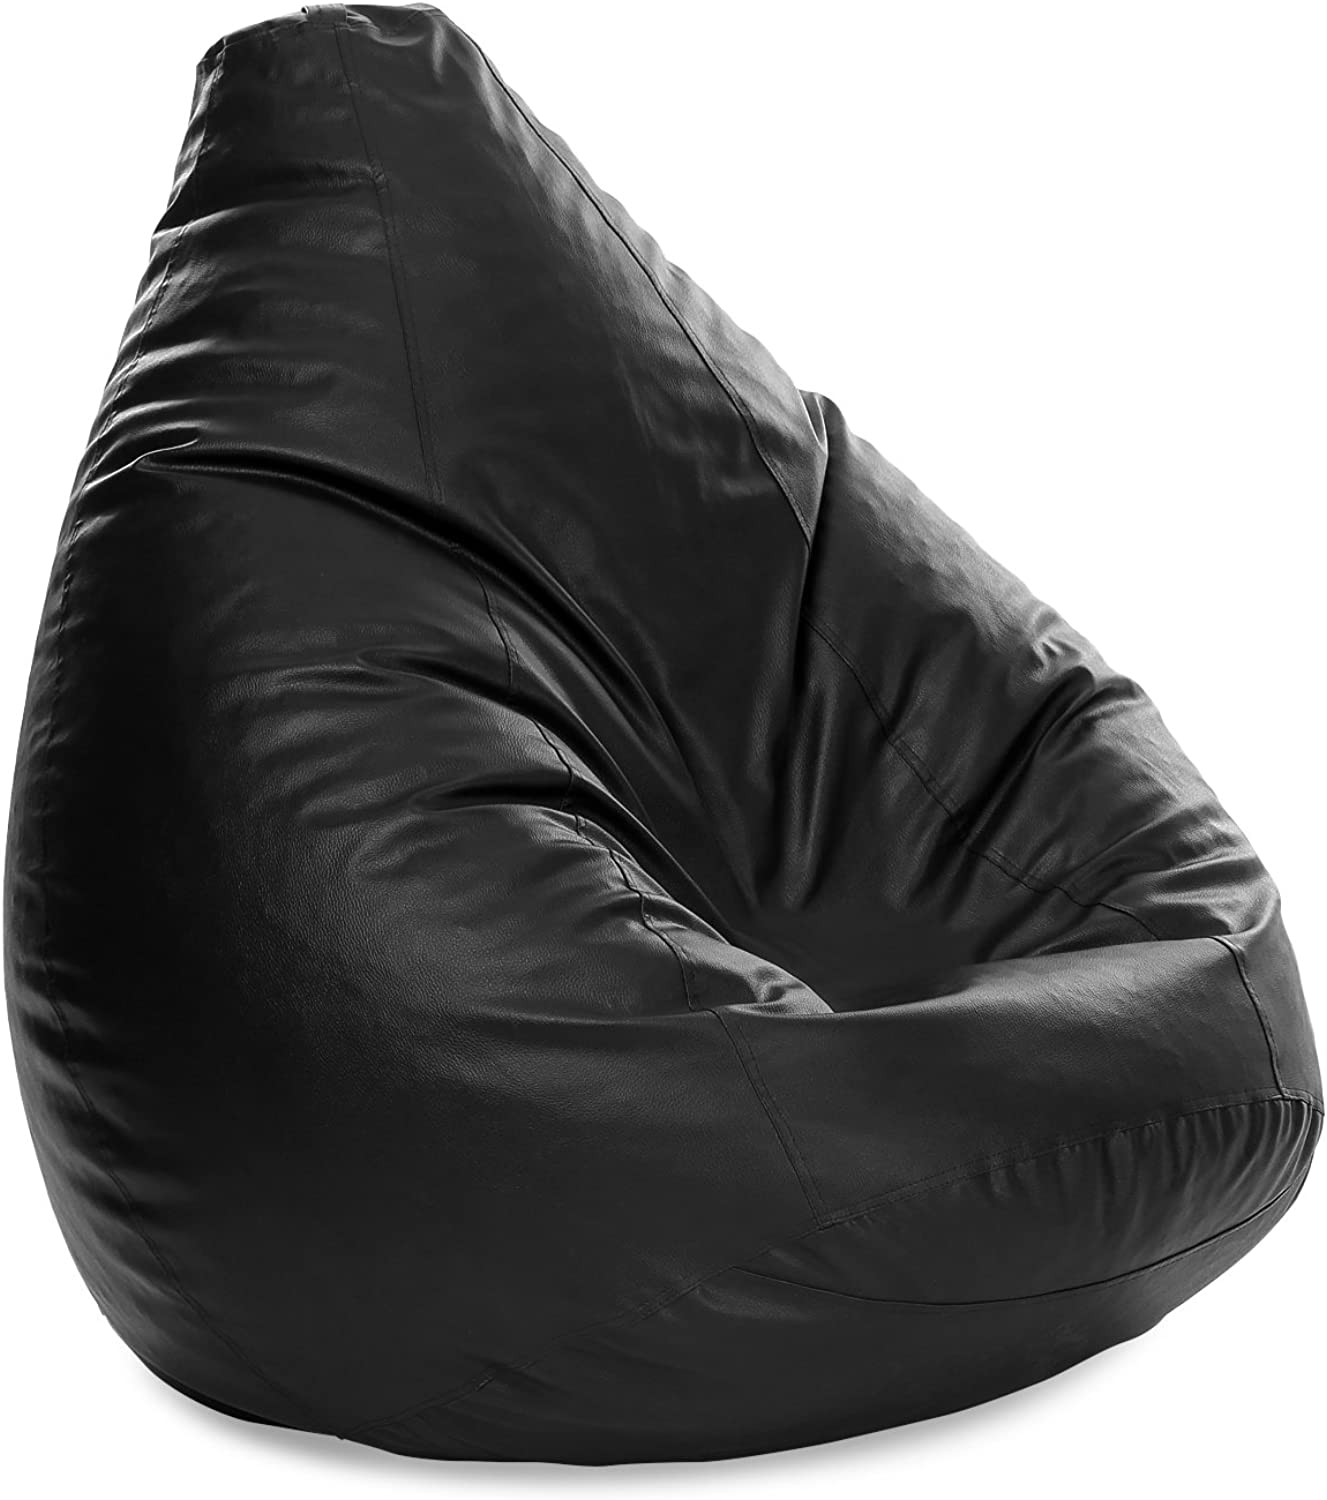 Style Homez Jumbo SAC Bean Bag Black color Cover Only